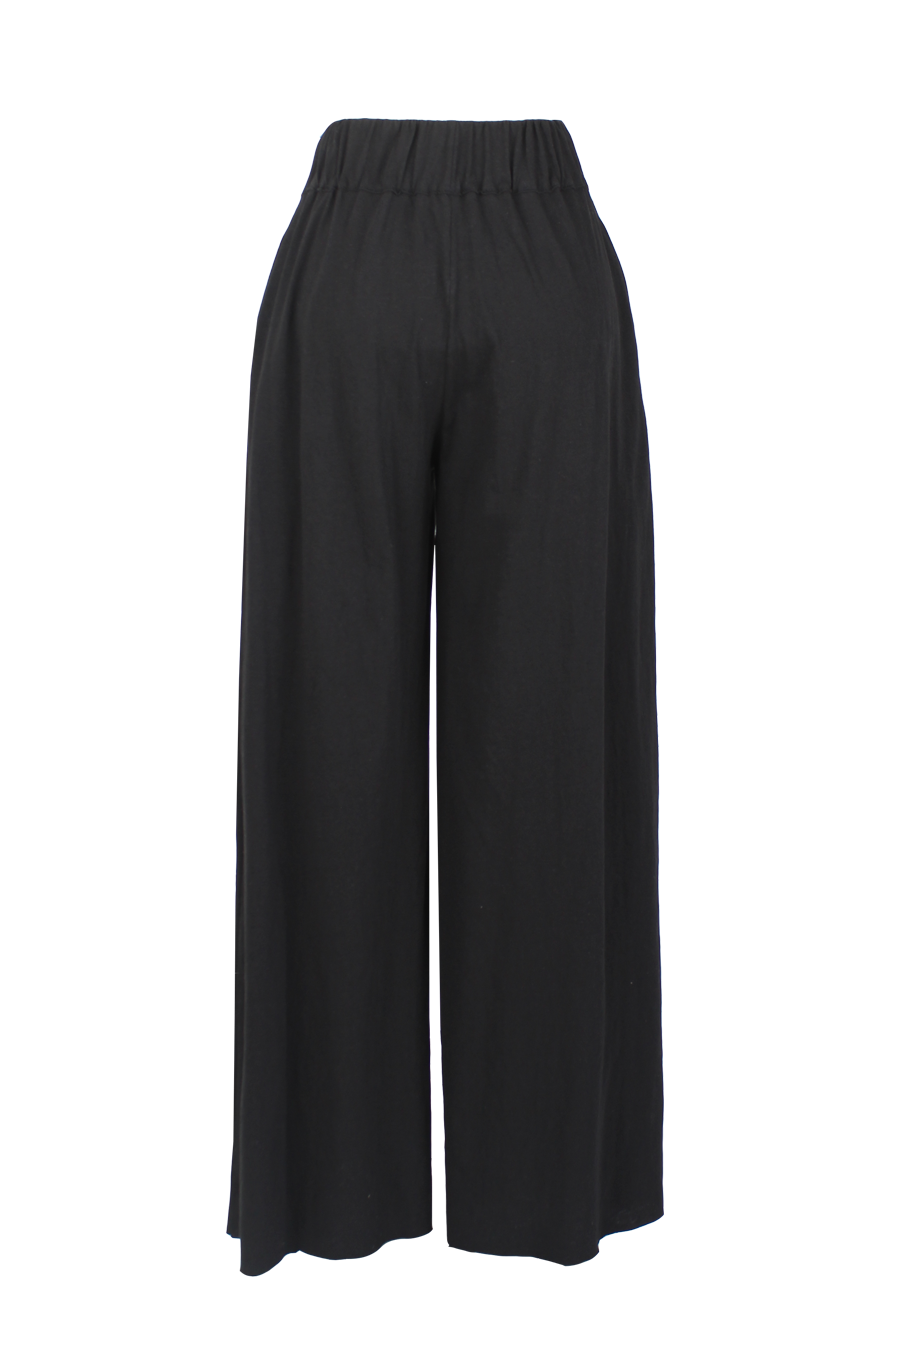 OLIVIA NZ Store online | Mabel Pants / Black